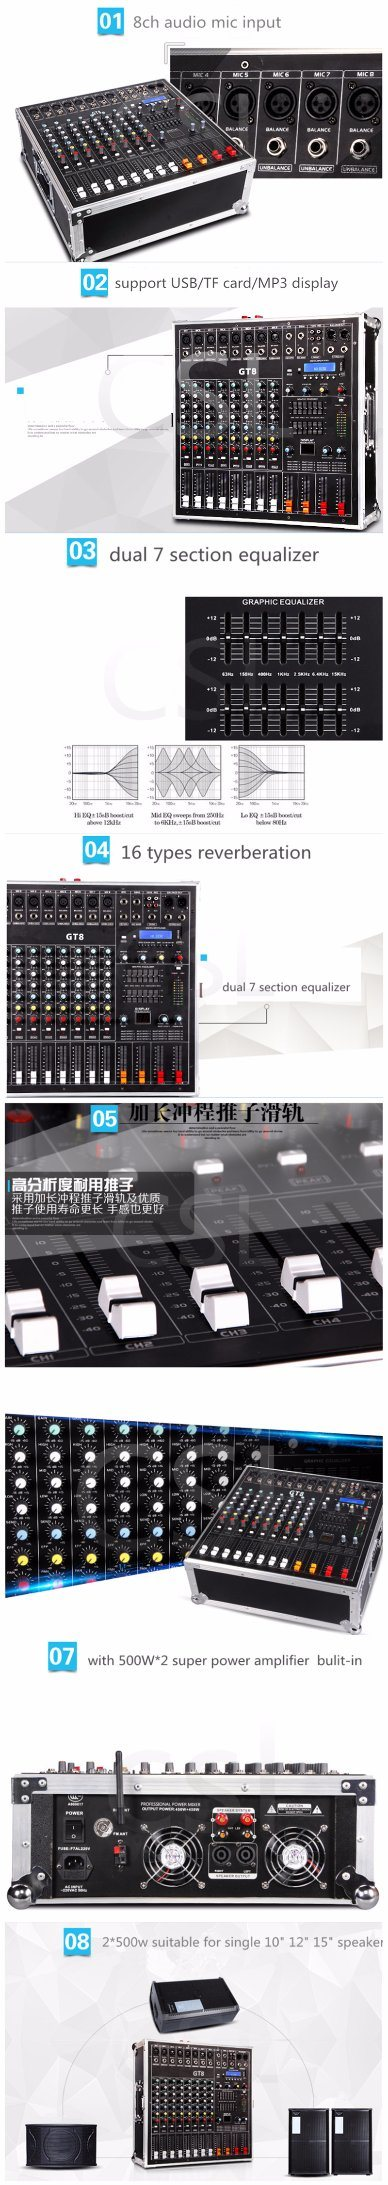 8ch 500w2 Powered Audio Dj Mixer With Amplifier China Mixing Usb Power Product Description